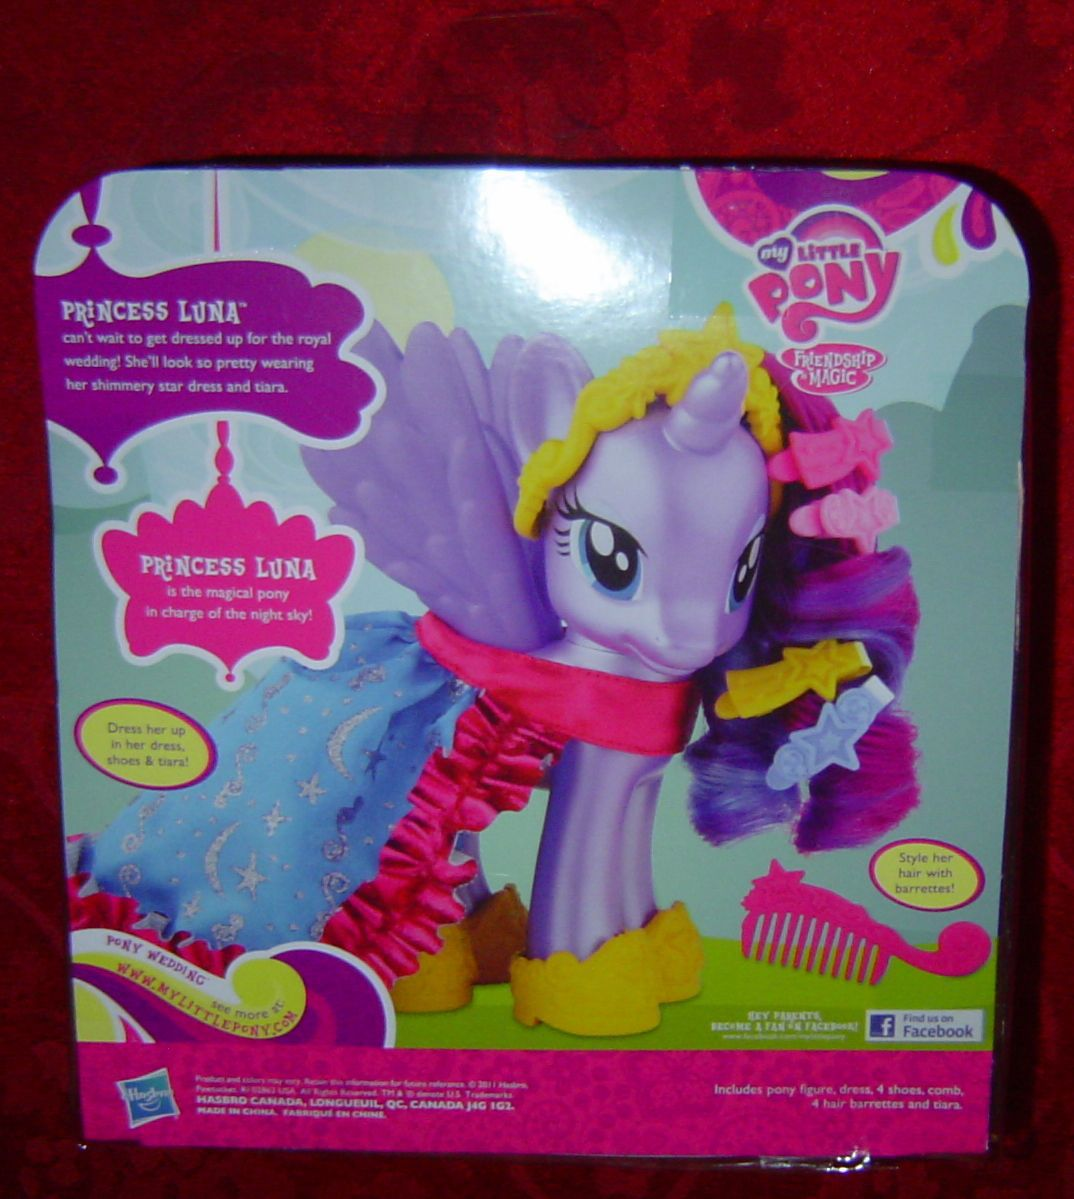 My Little Pony Fashion Style Princess Luna Friendship Is Magic Fim G4 1990 Now